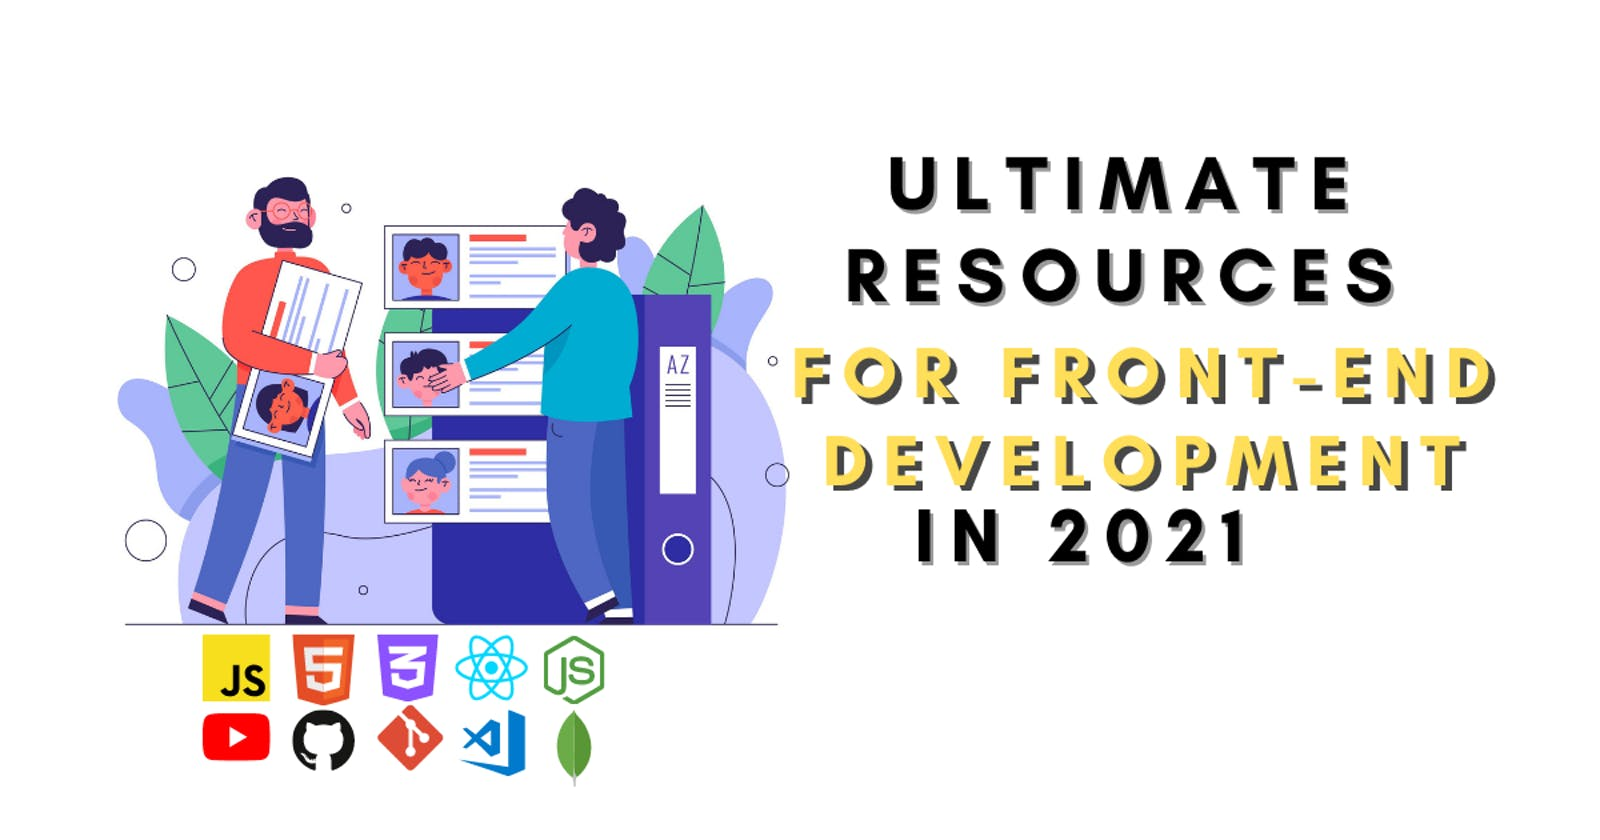 200+ Ultimate Resources for Front-End Development in 2021